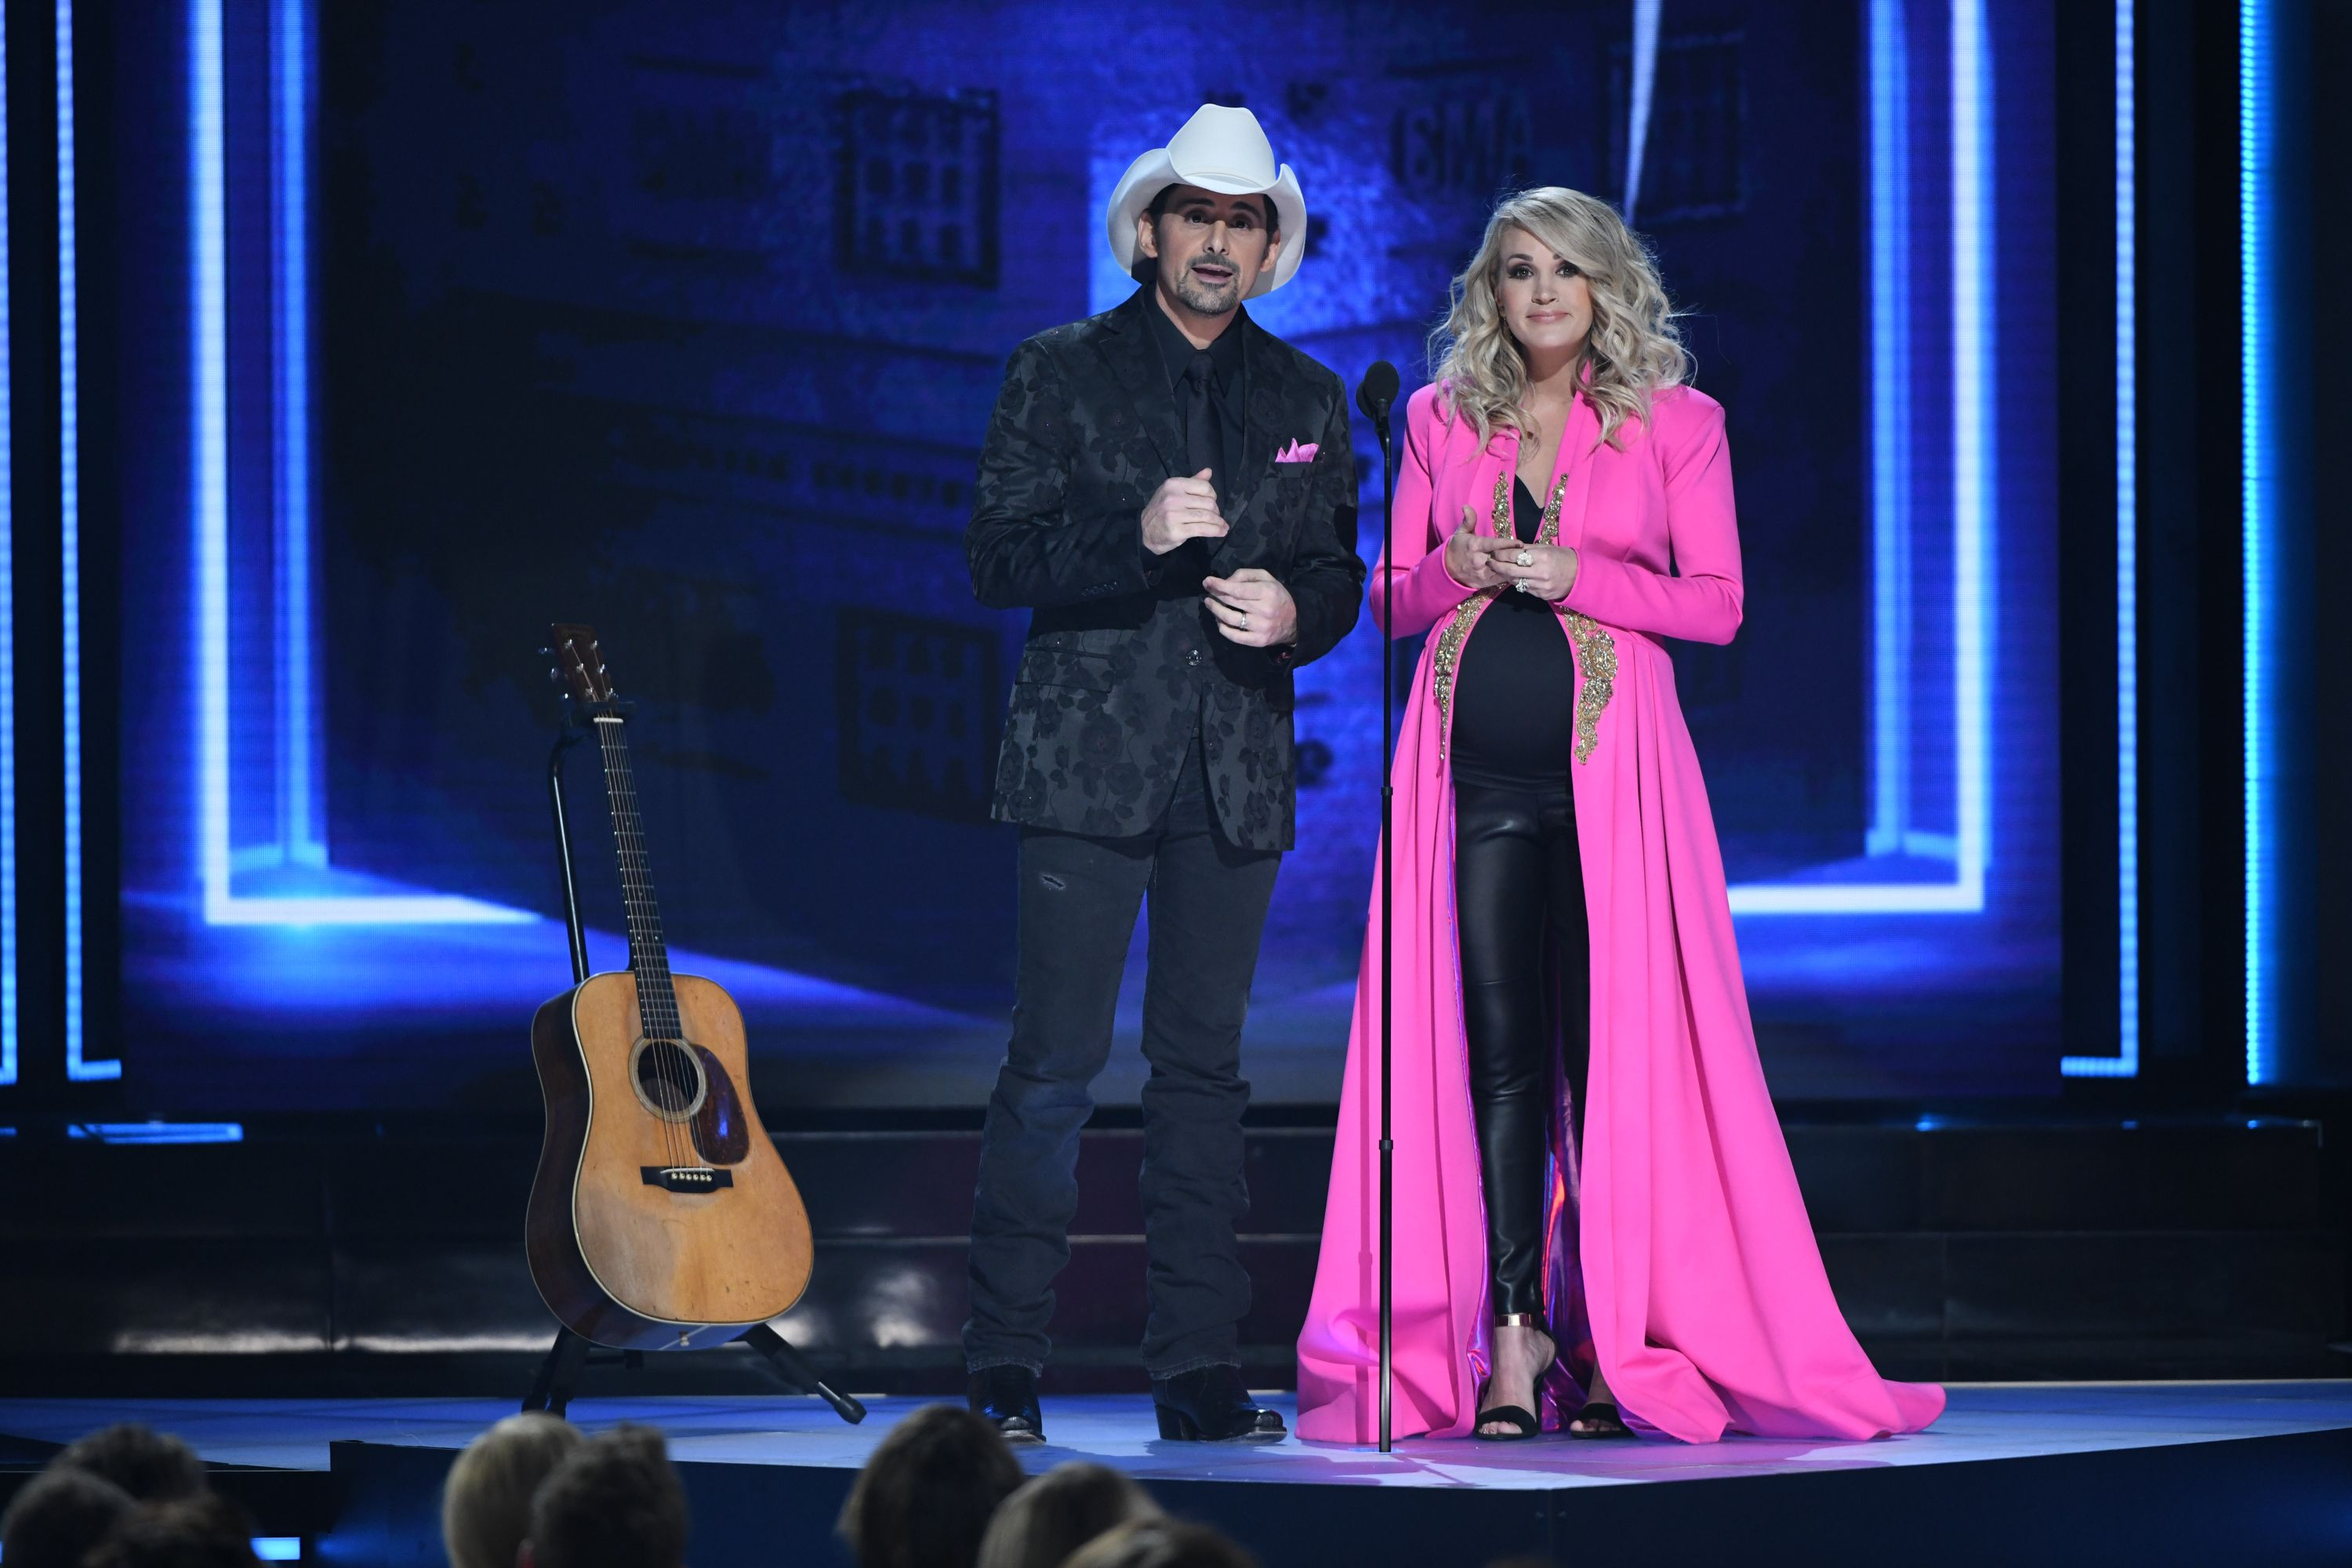 The Real Reason Brad Paisley Isn't Co-Hosting the 2019 CMA Awards With Carrie Underwood